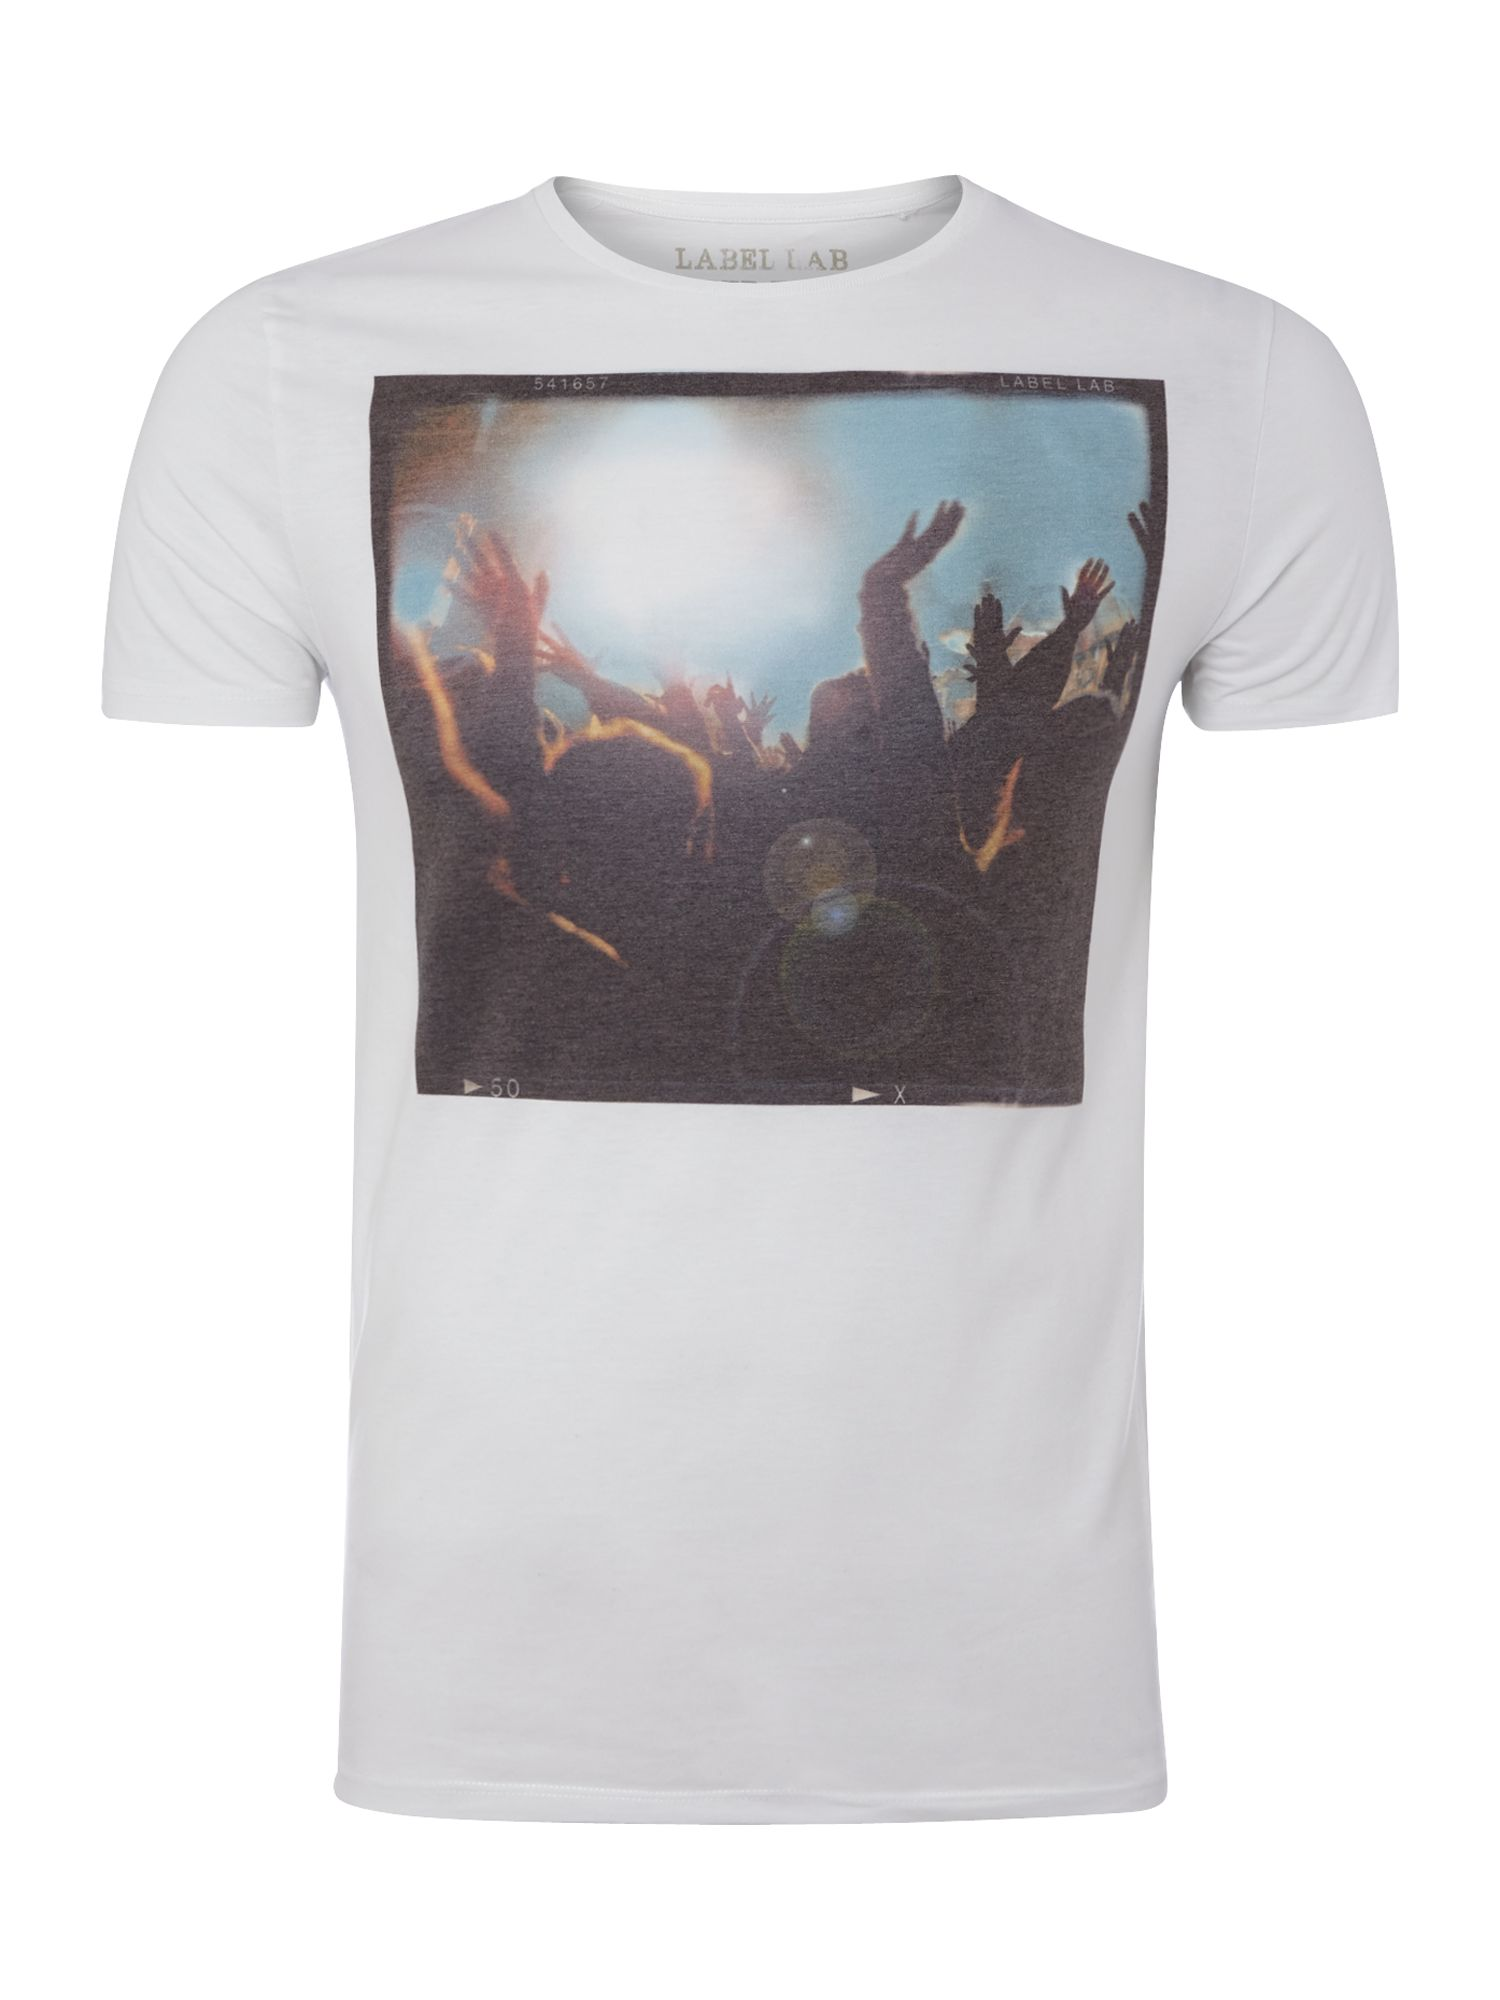 Hands graphic T-shirt